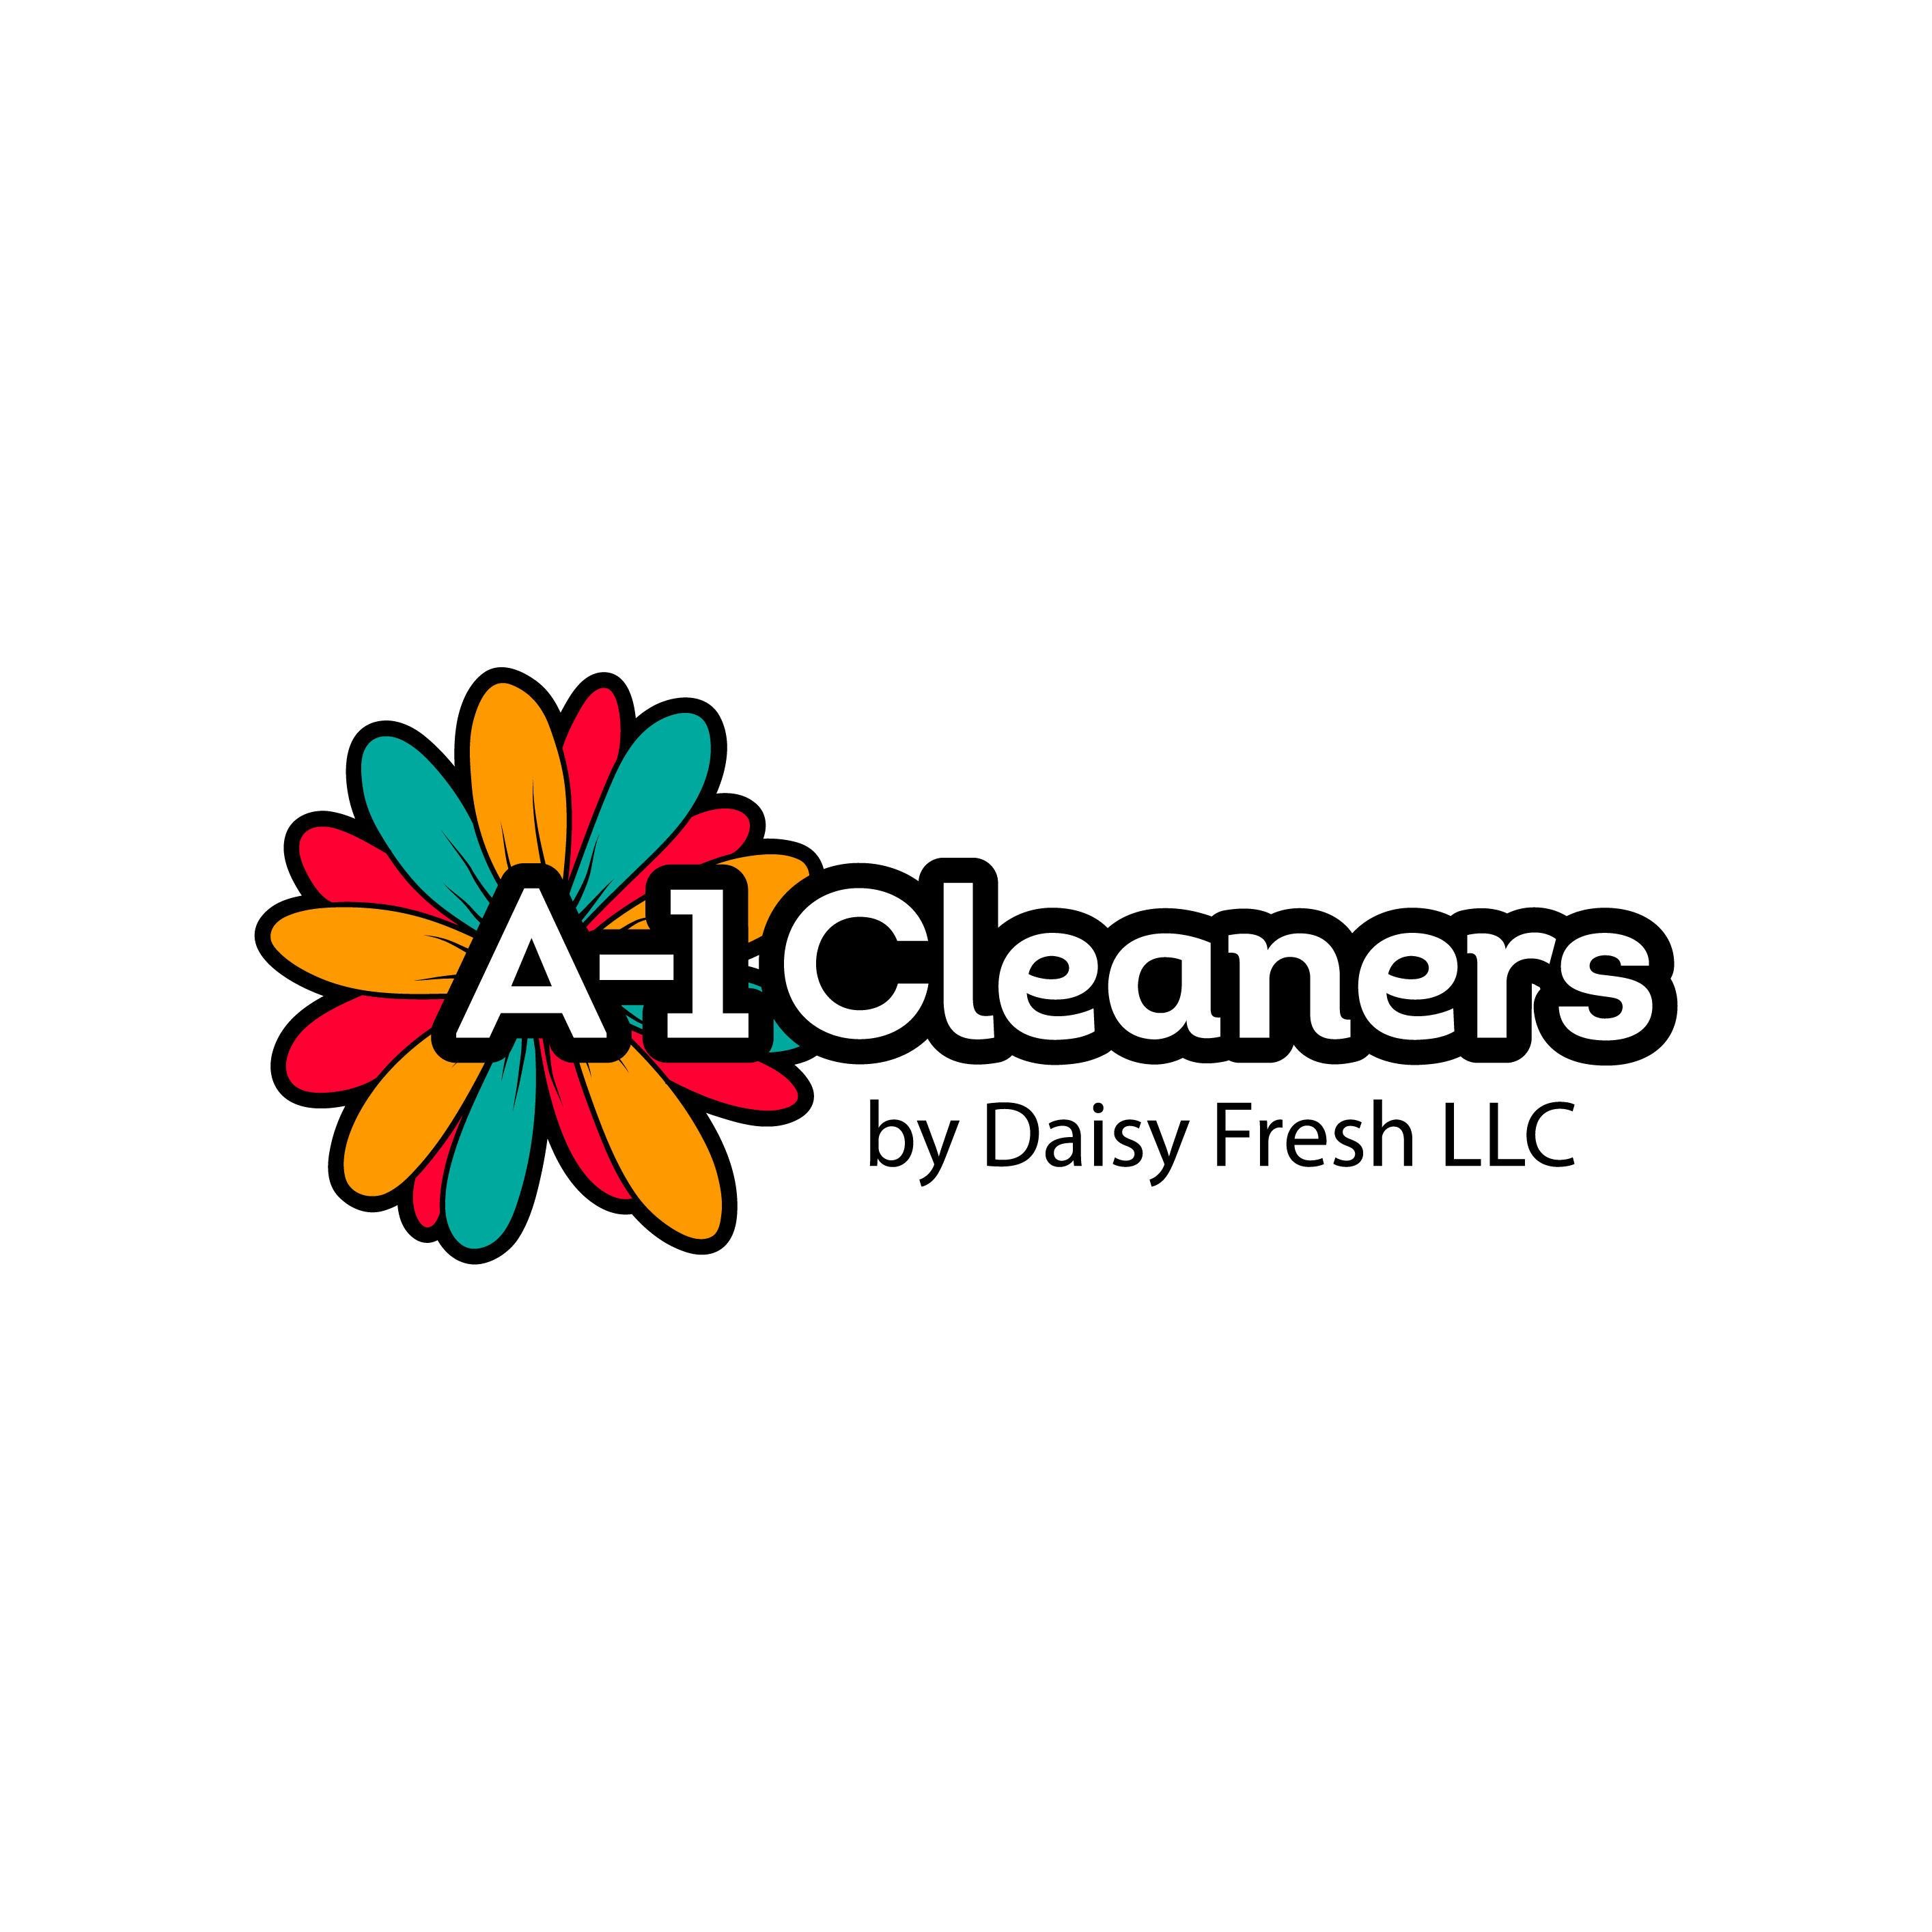 A-1 Cleaners